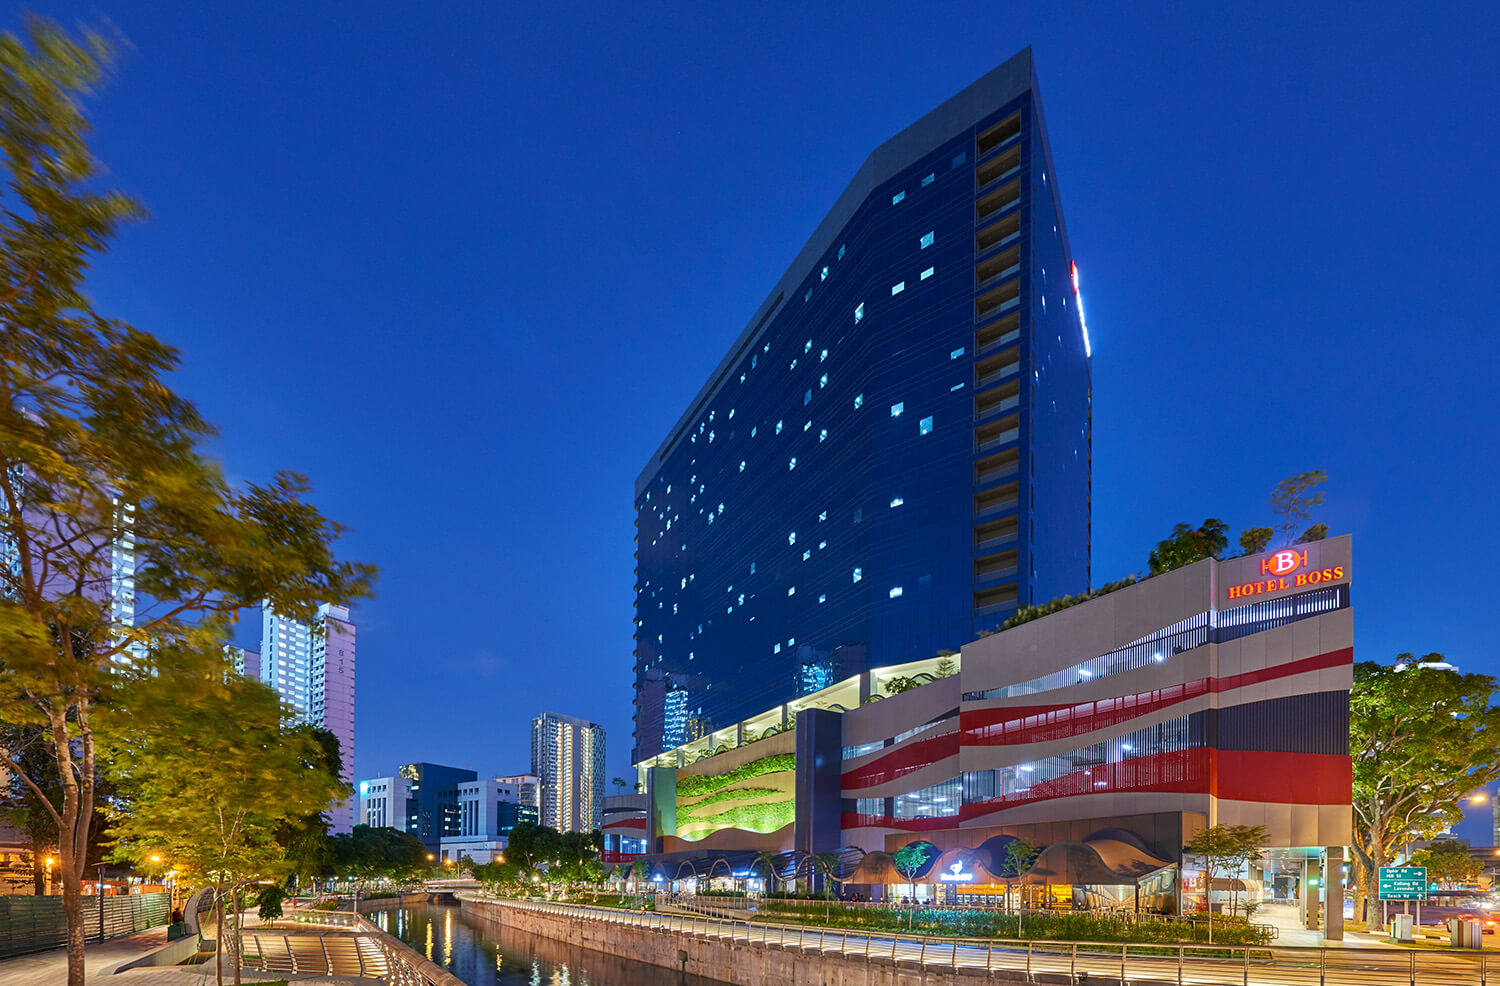 Night View | Hotel Boss Singapore